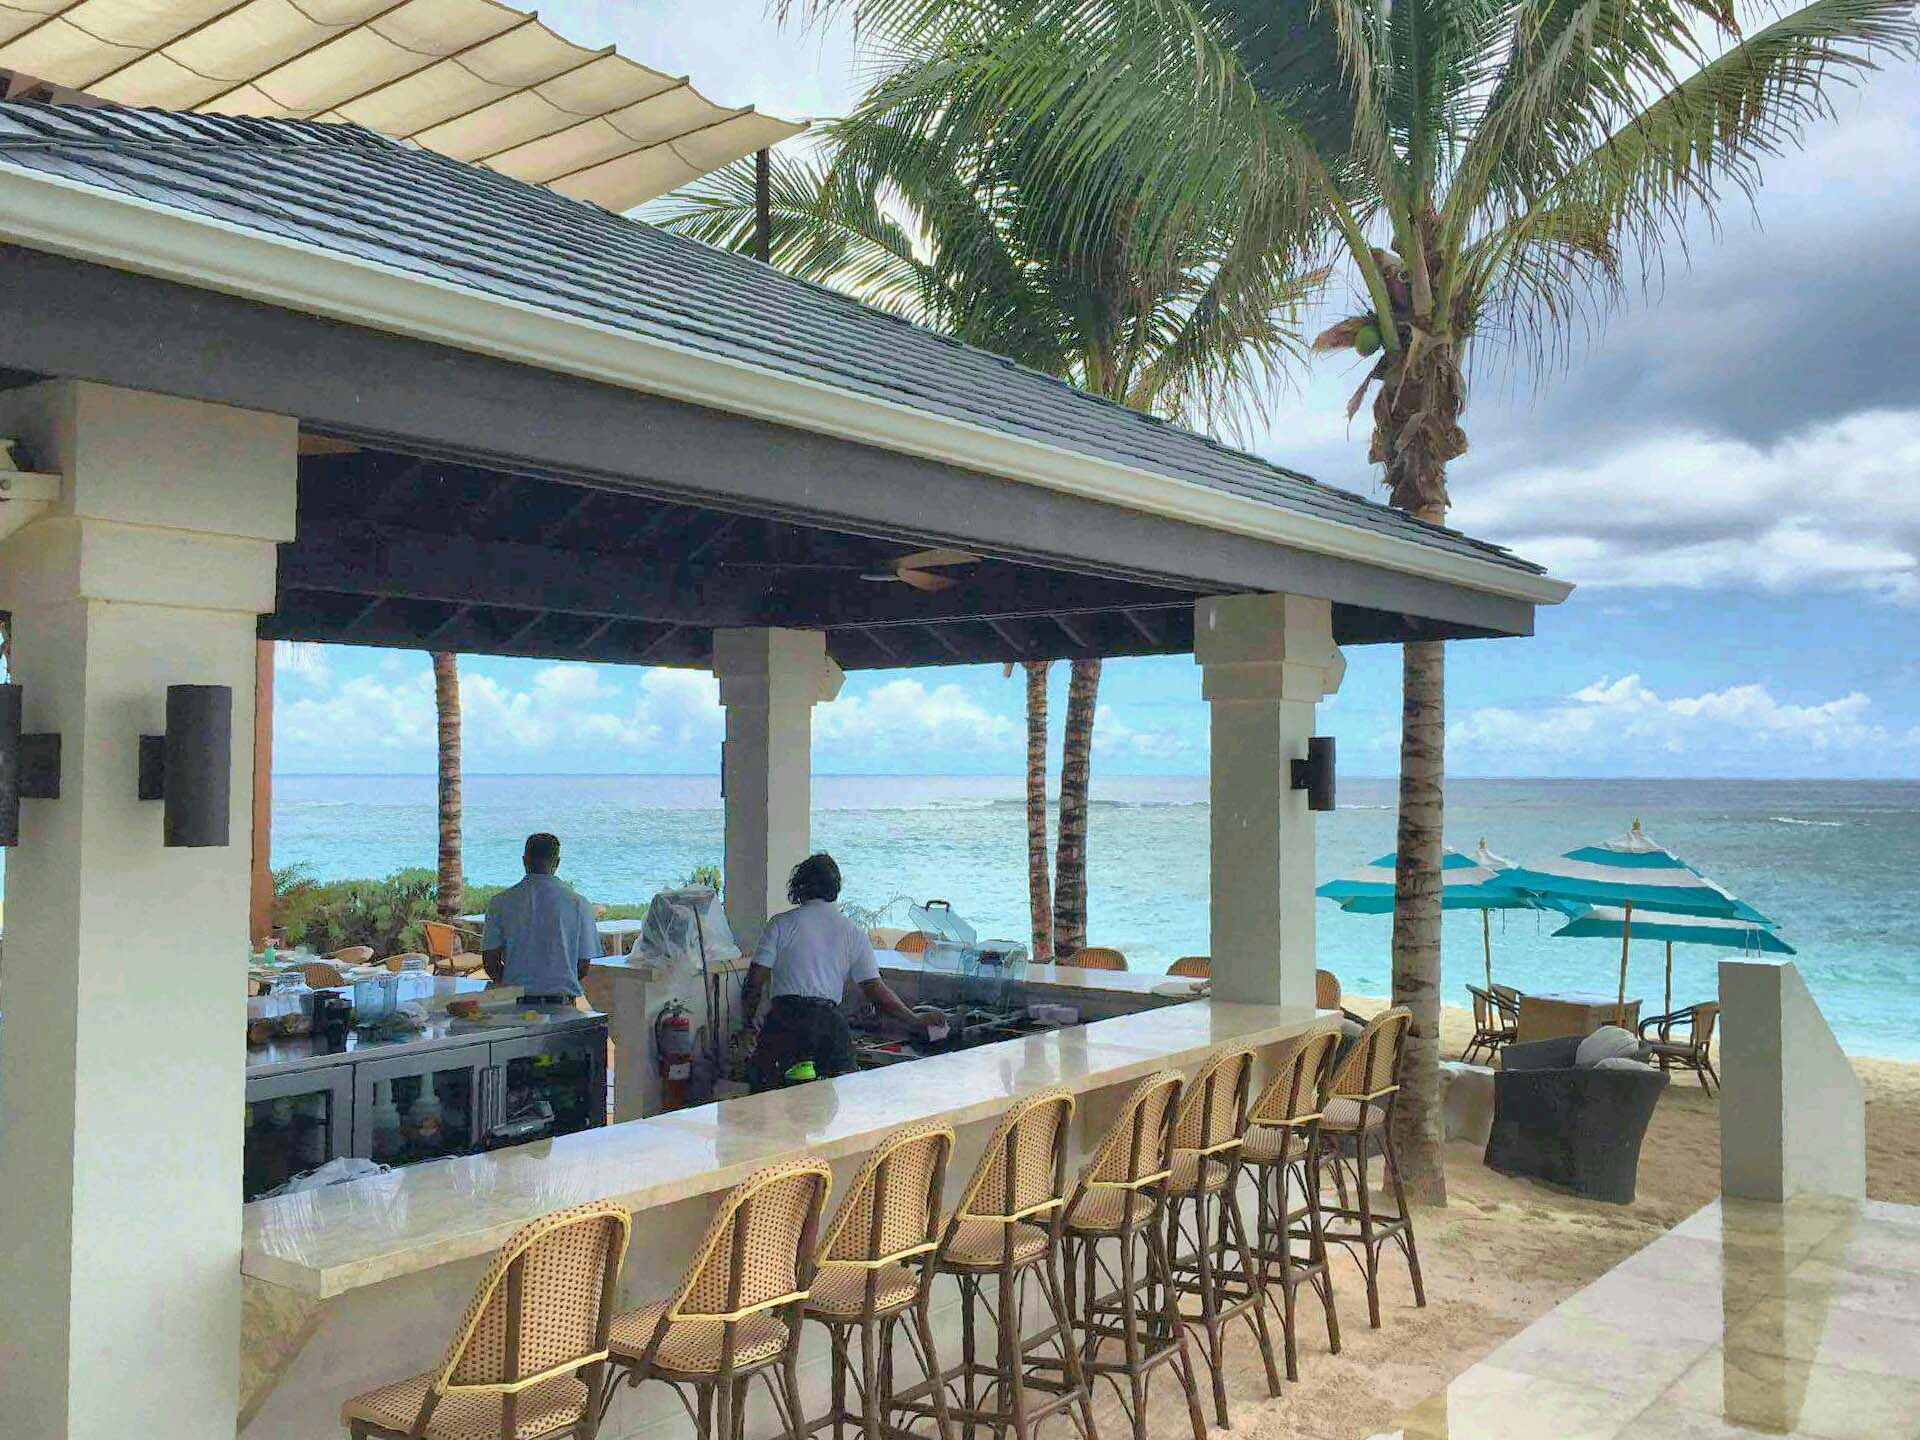 Hd Tropical Island Beach Paradise Wallpapers And Backgrounds: Anguilla's Zemi Beach House Welcomes New Beach Bar To